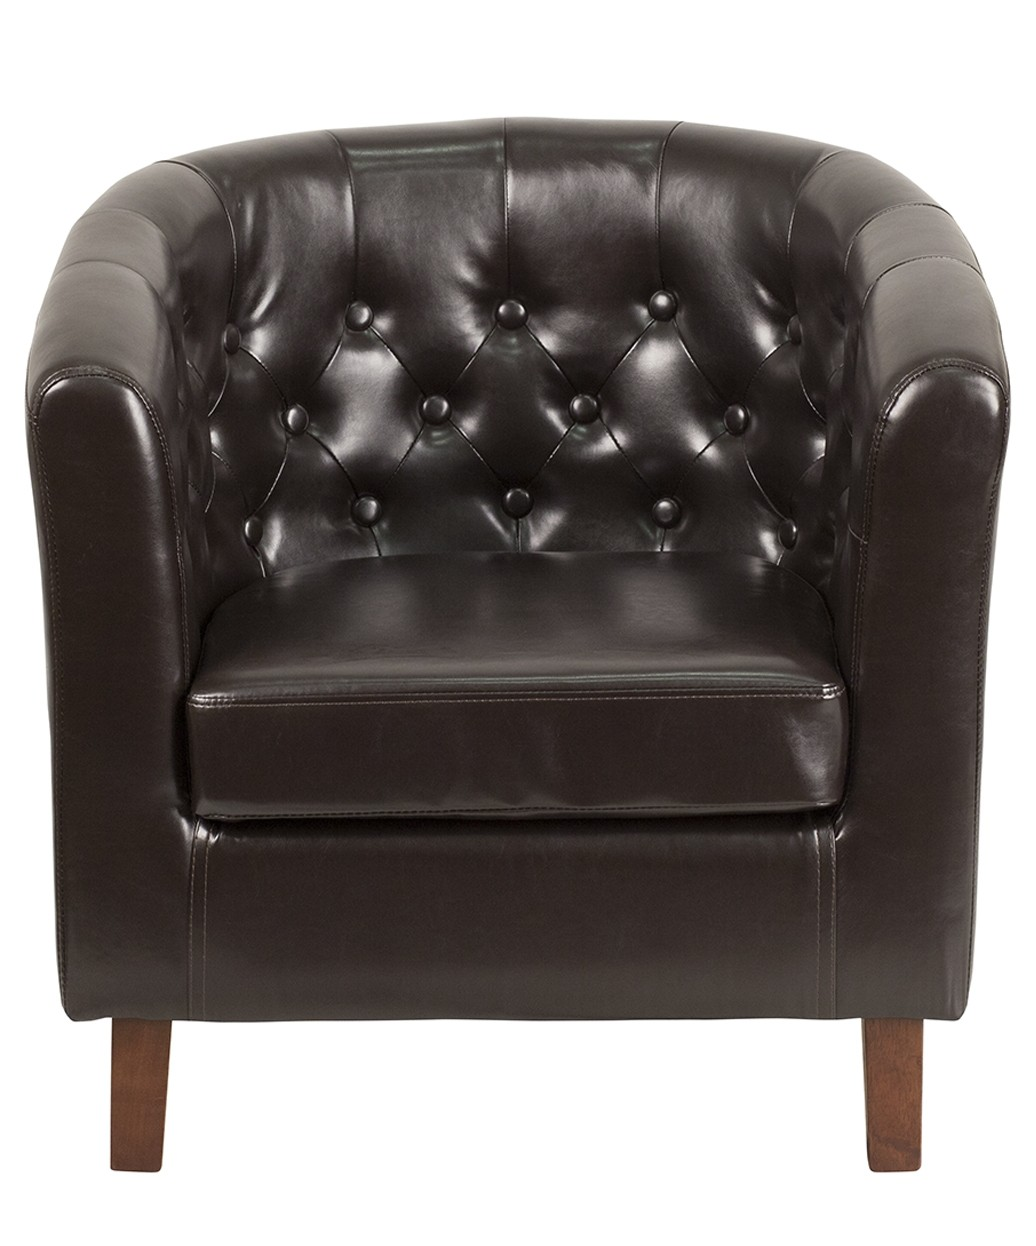 Kensignton Tufted Leather Reception Chair